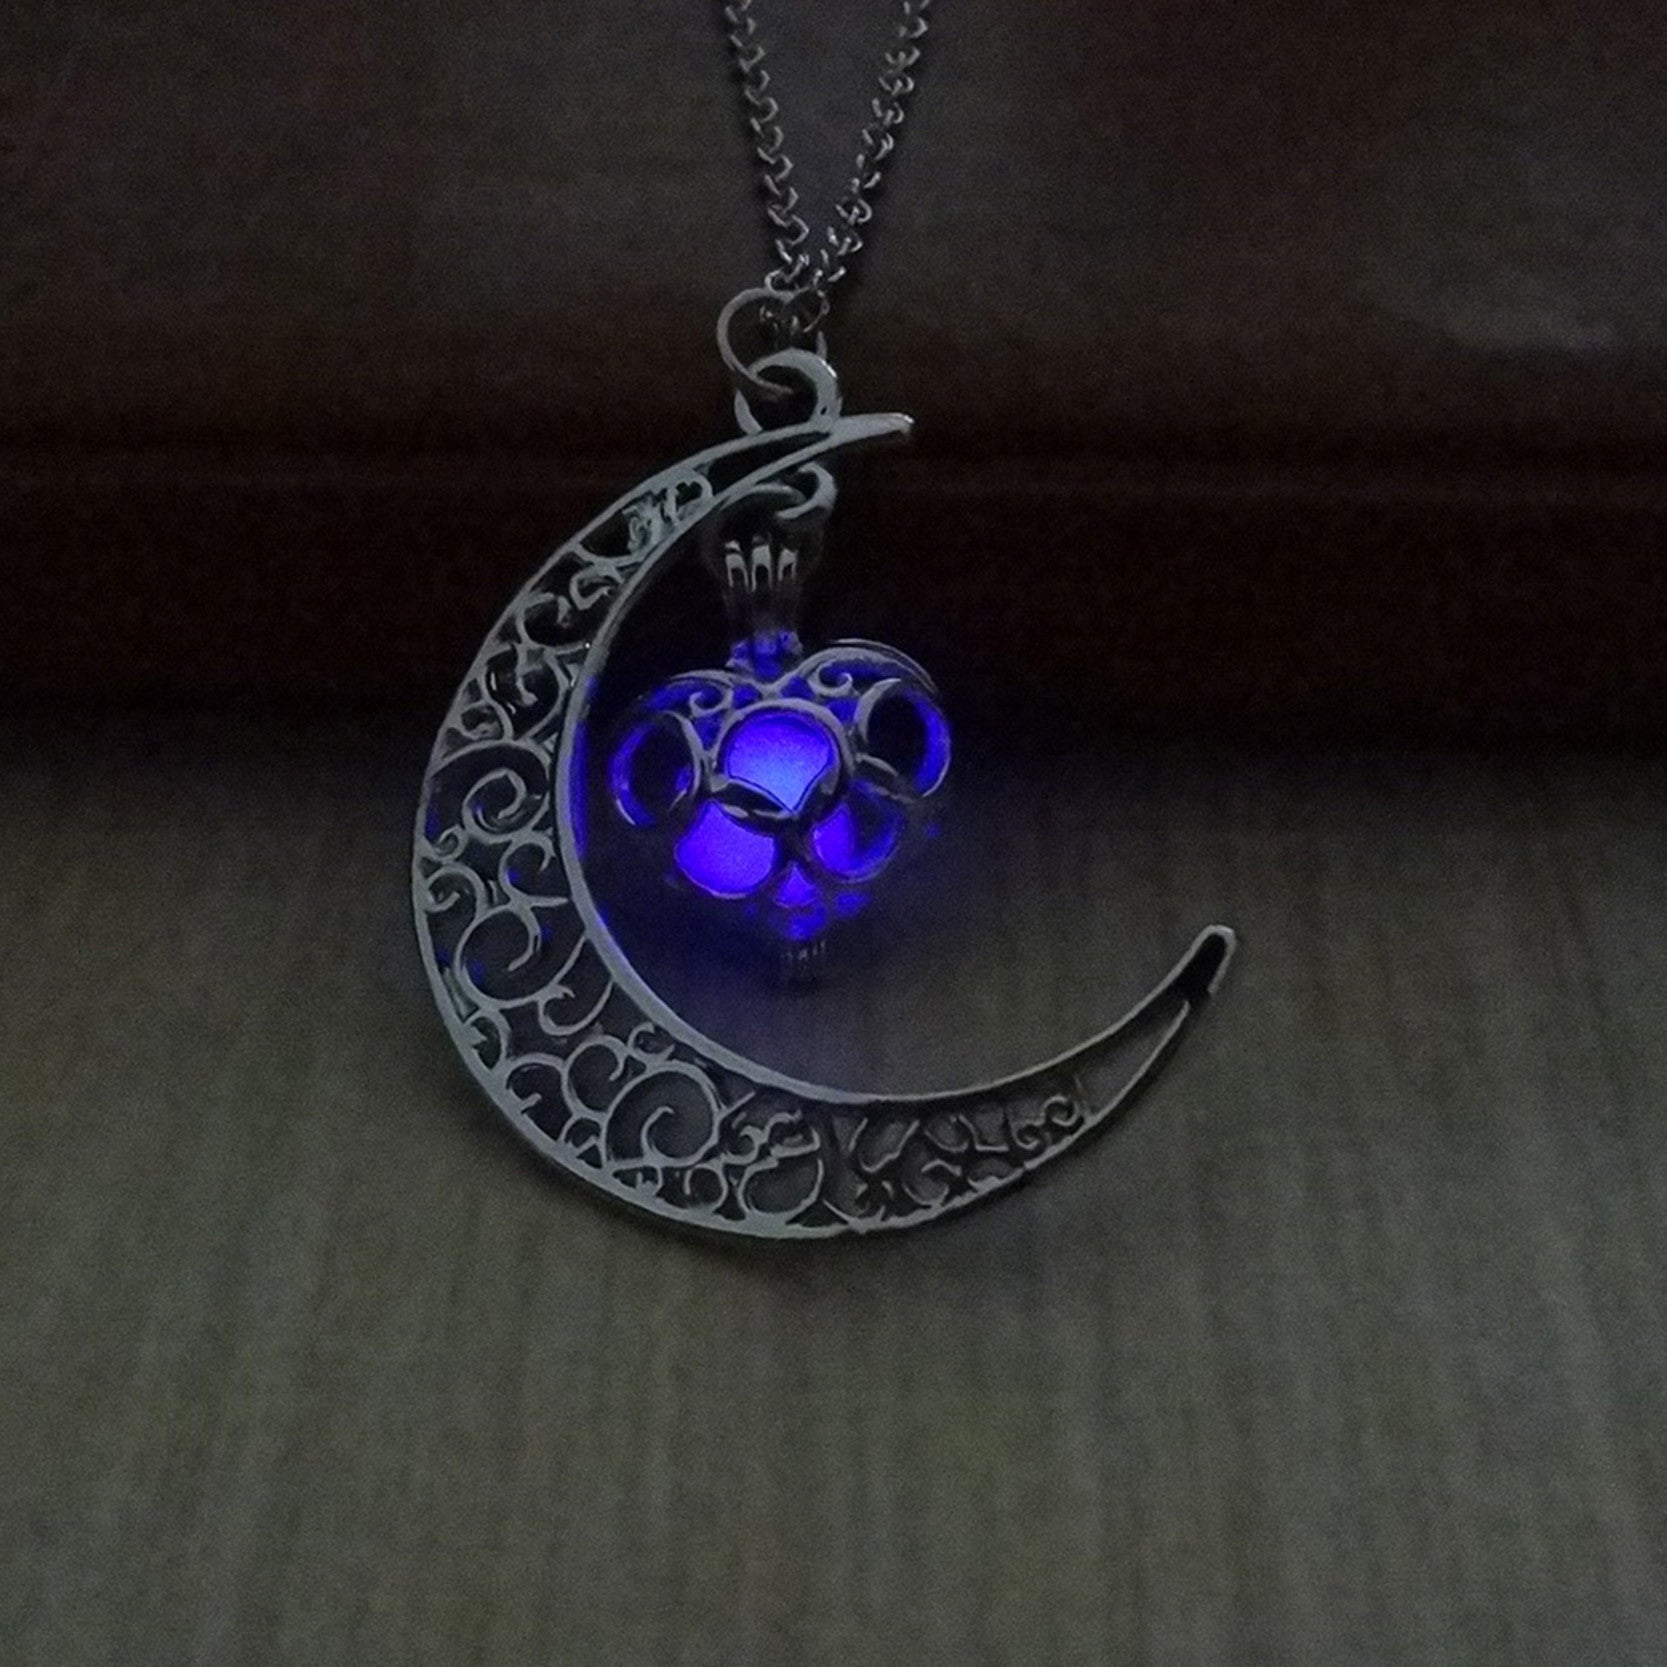 necklace in for dark vintage wholesale pendant the glow glowing hollow circle product necklaces jewelry